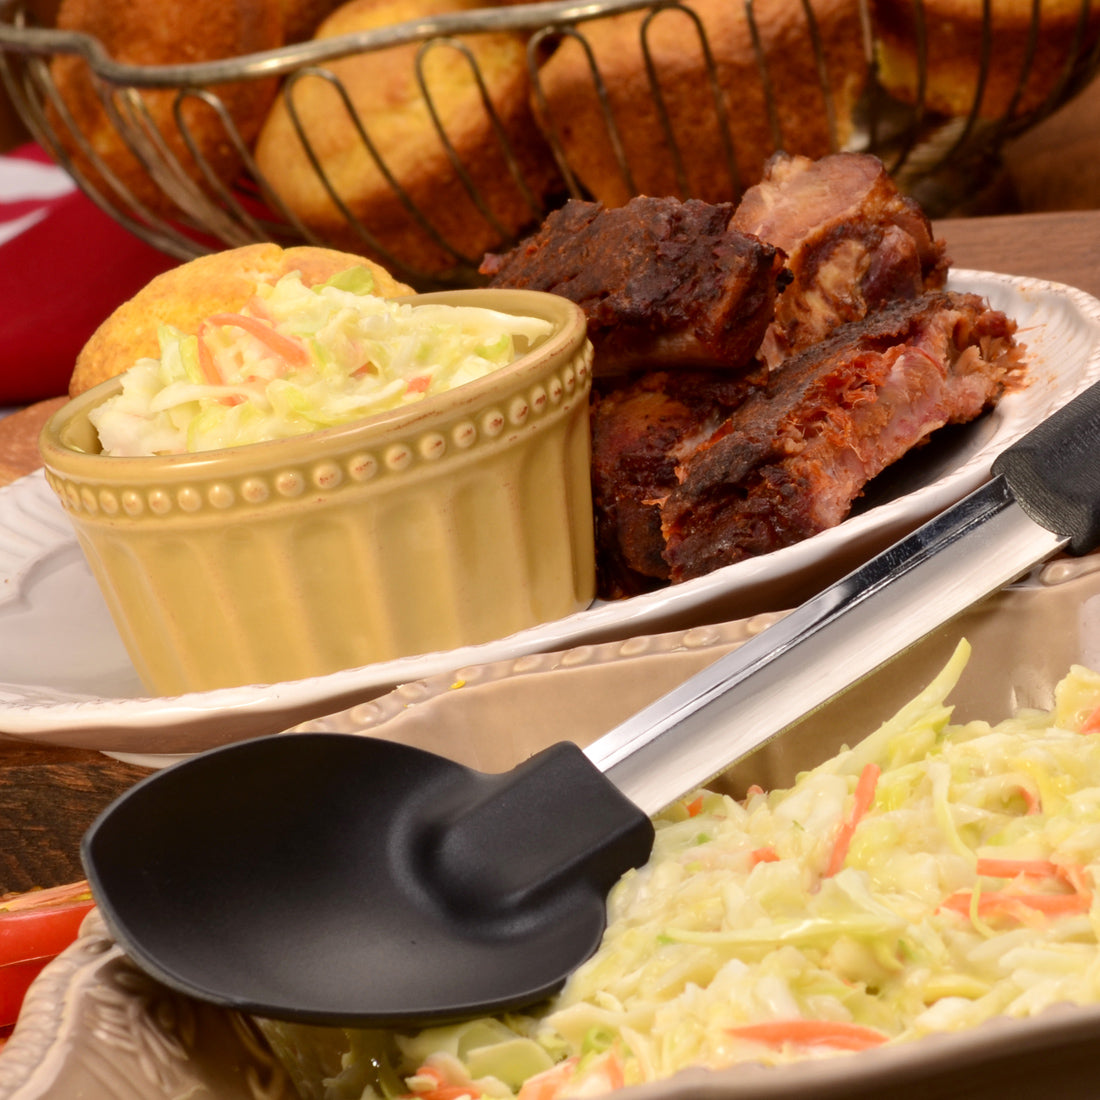 Non-Scratch Spoon next to a dish of coleslaw and ribs